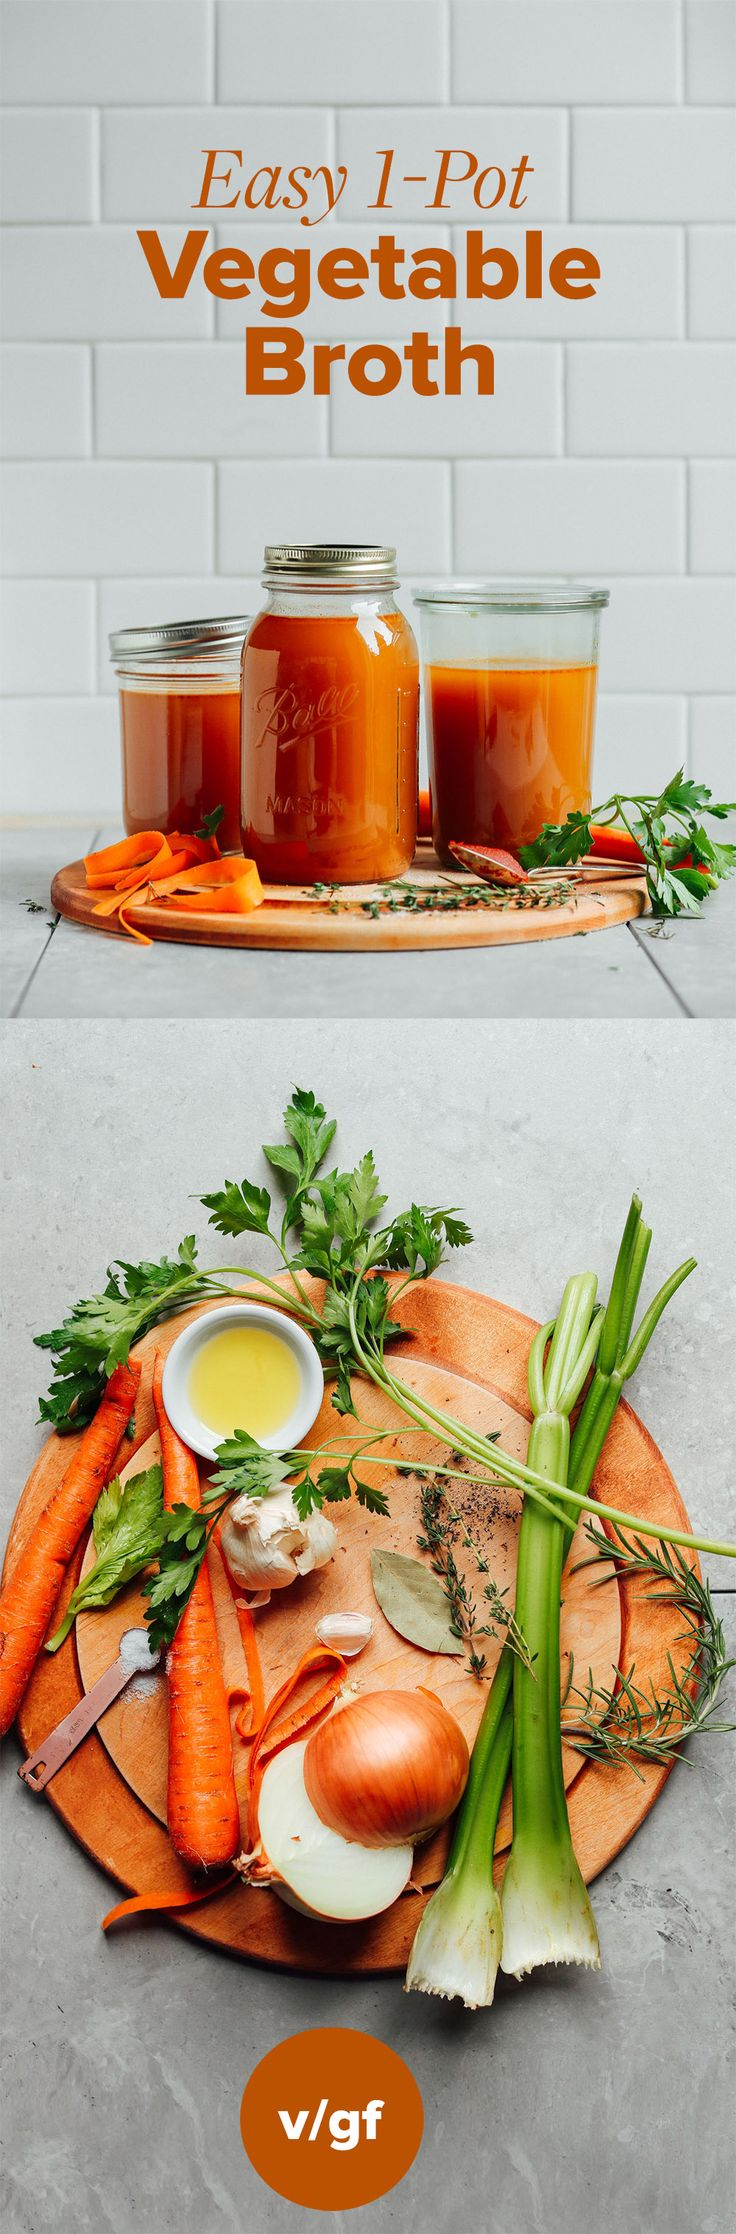 This easy, one-pot recipe for homemade vegetable broth is a great way to use up vegetable scraps to make delicious broth for soups and more!